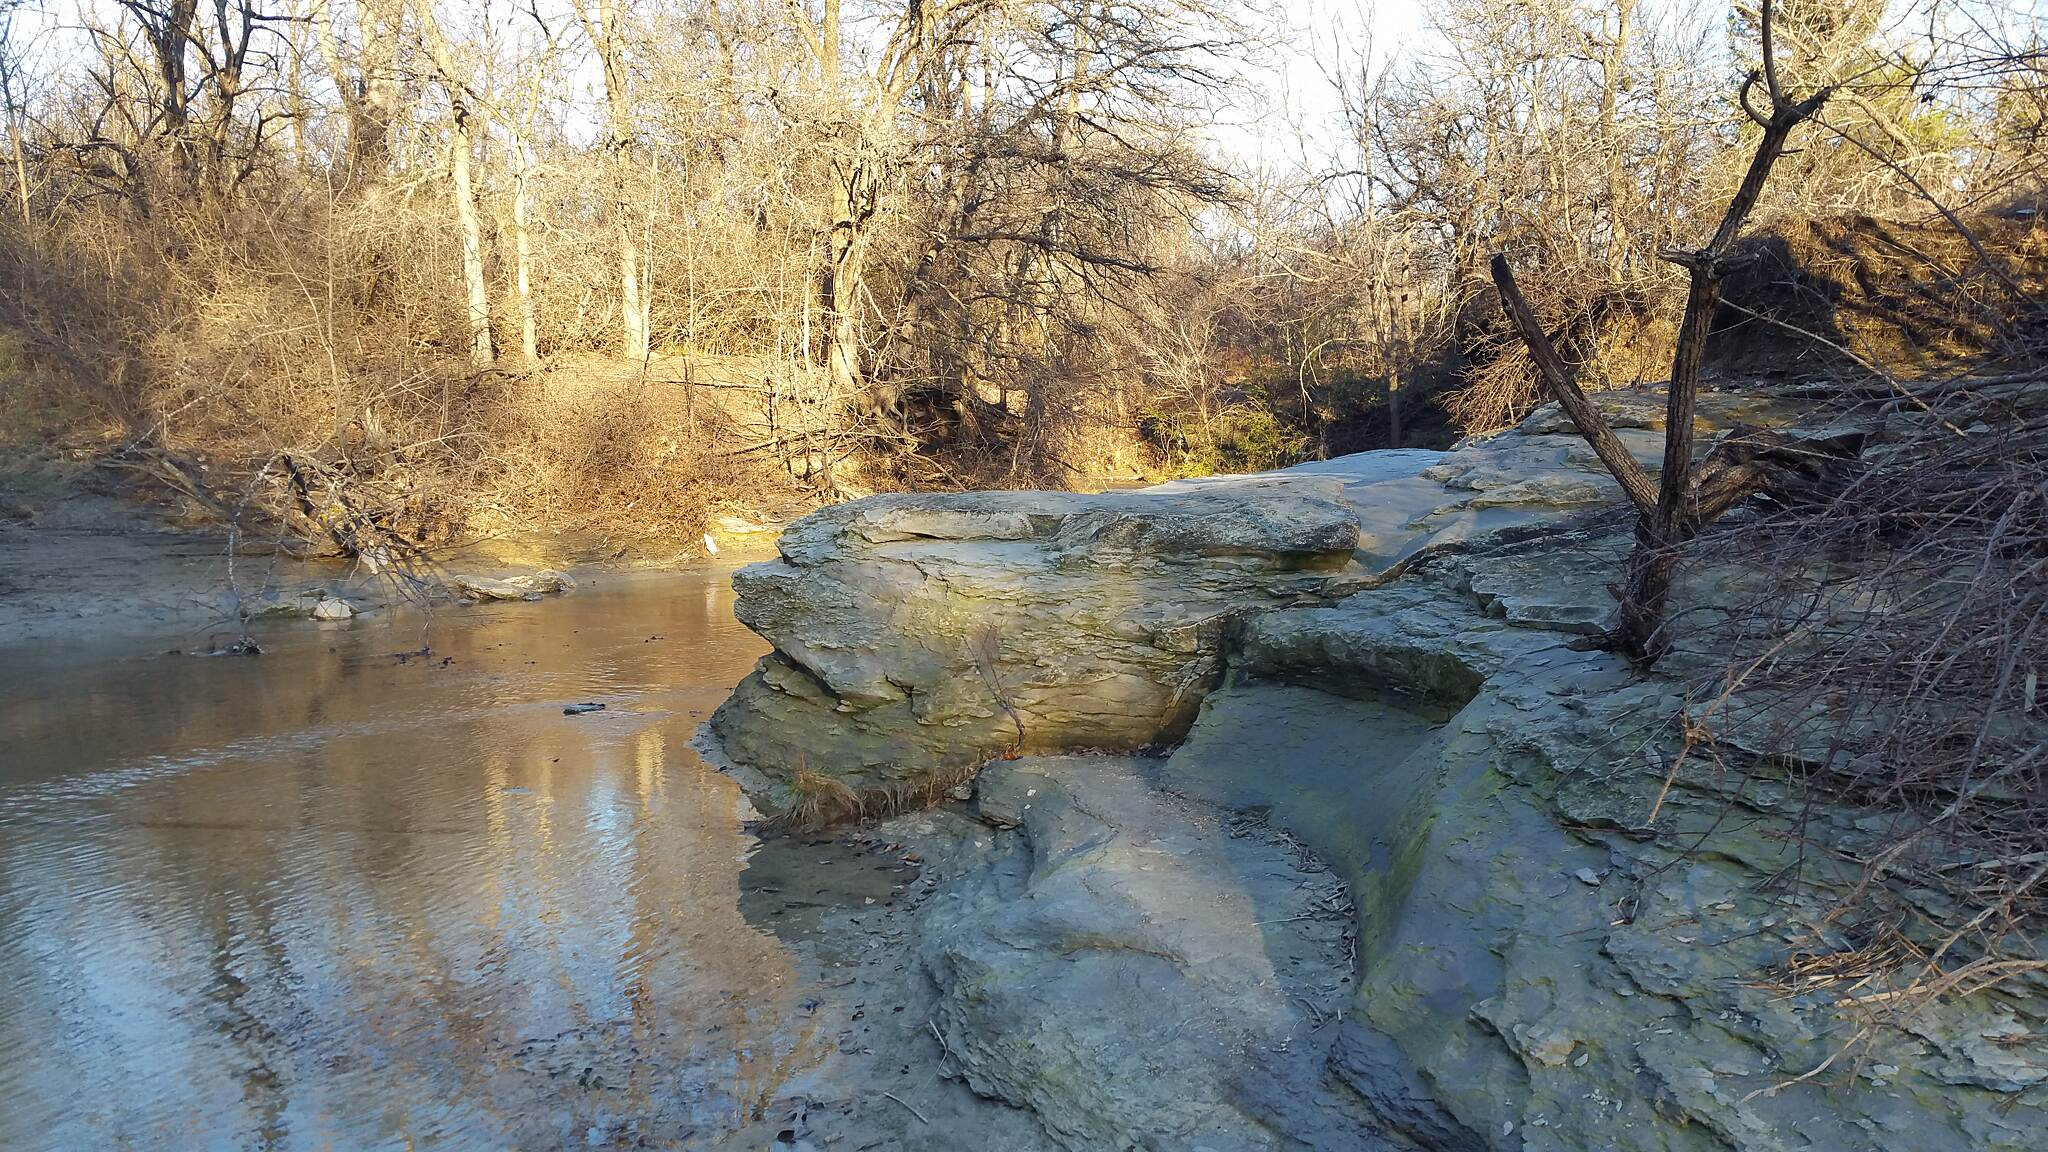 Caddo Trail Rock outcrop over Stewart Creek  Gorgeous and tranquil in in the middle of a bustling city